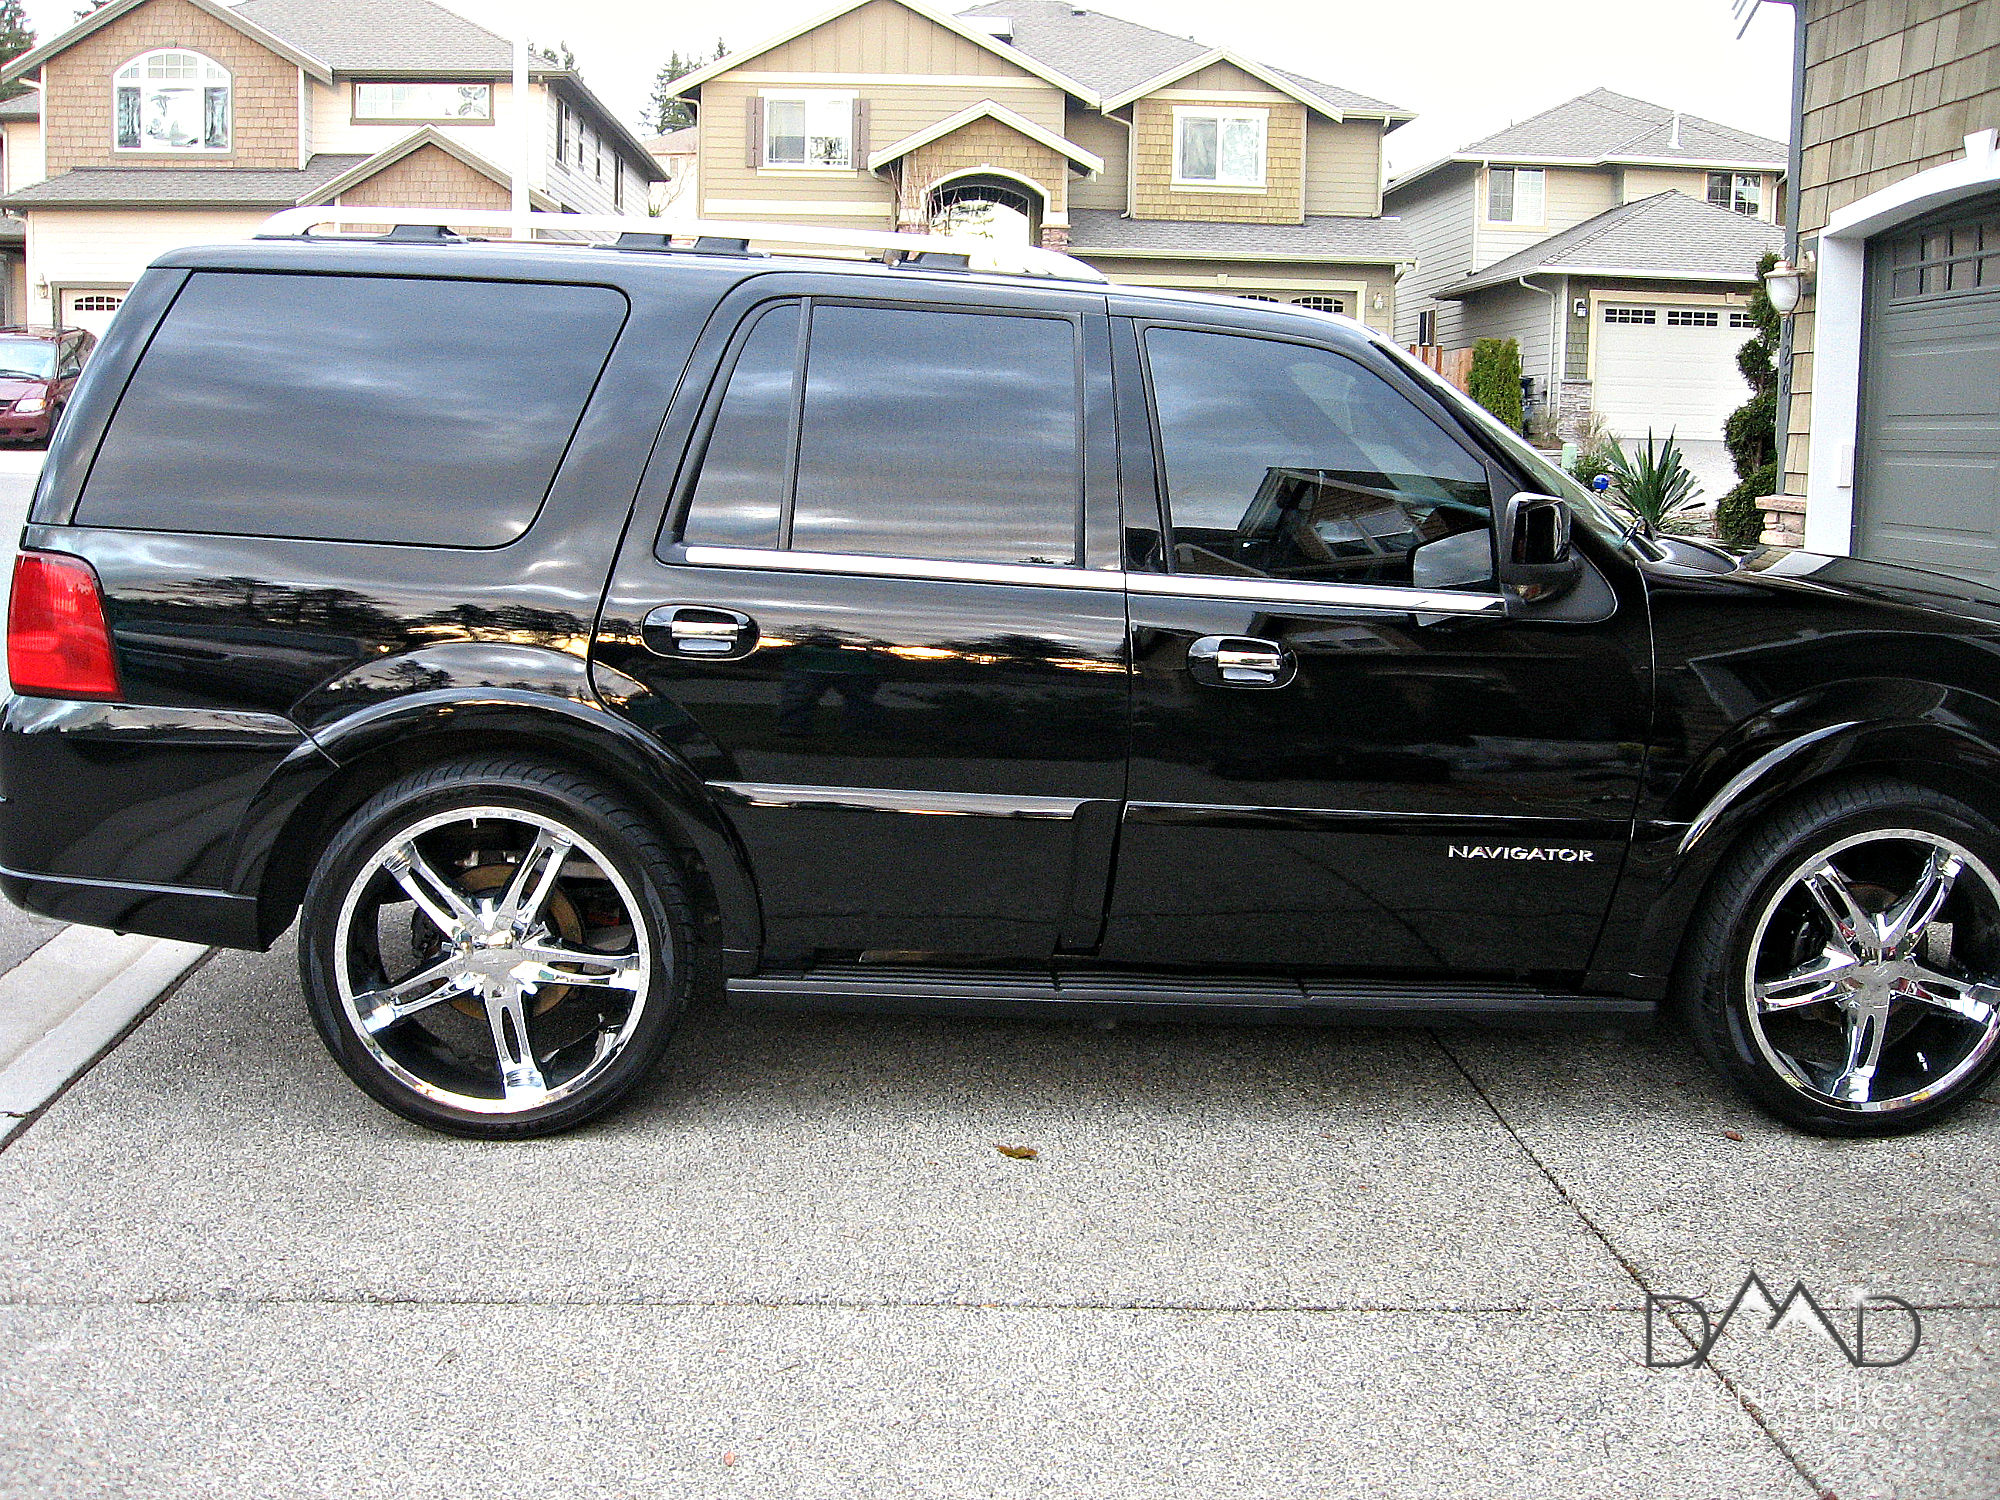 Lincoln Navigator | Bend Oregon | Mobile Car Detailing | Dynamic Mobile Detailing